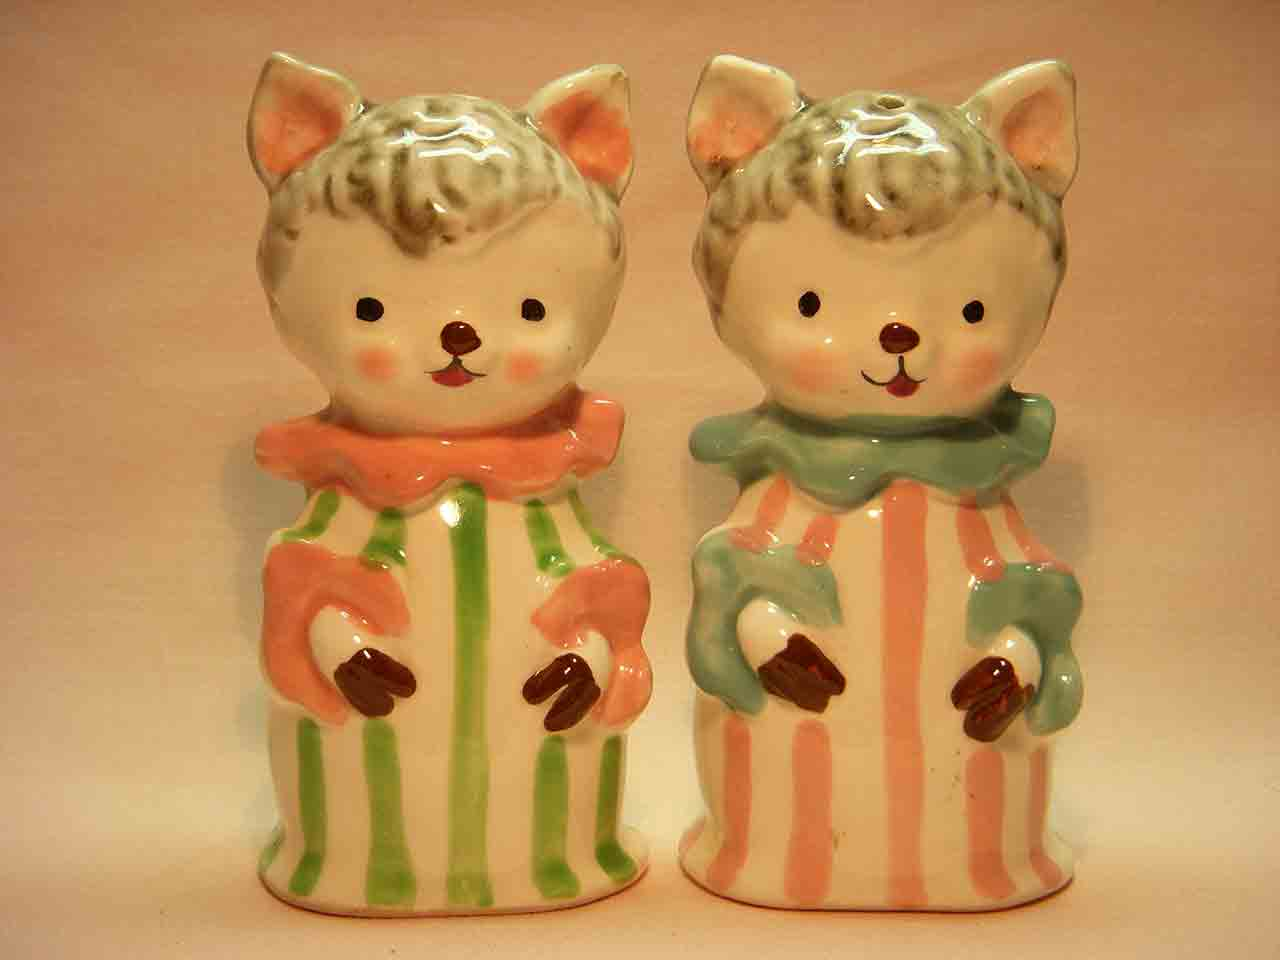 Animals in pajamas series salt and pepper shakers